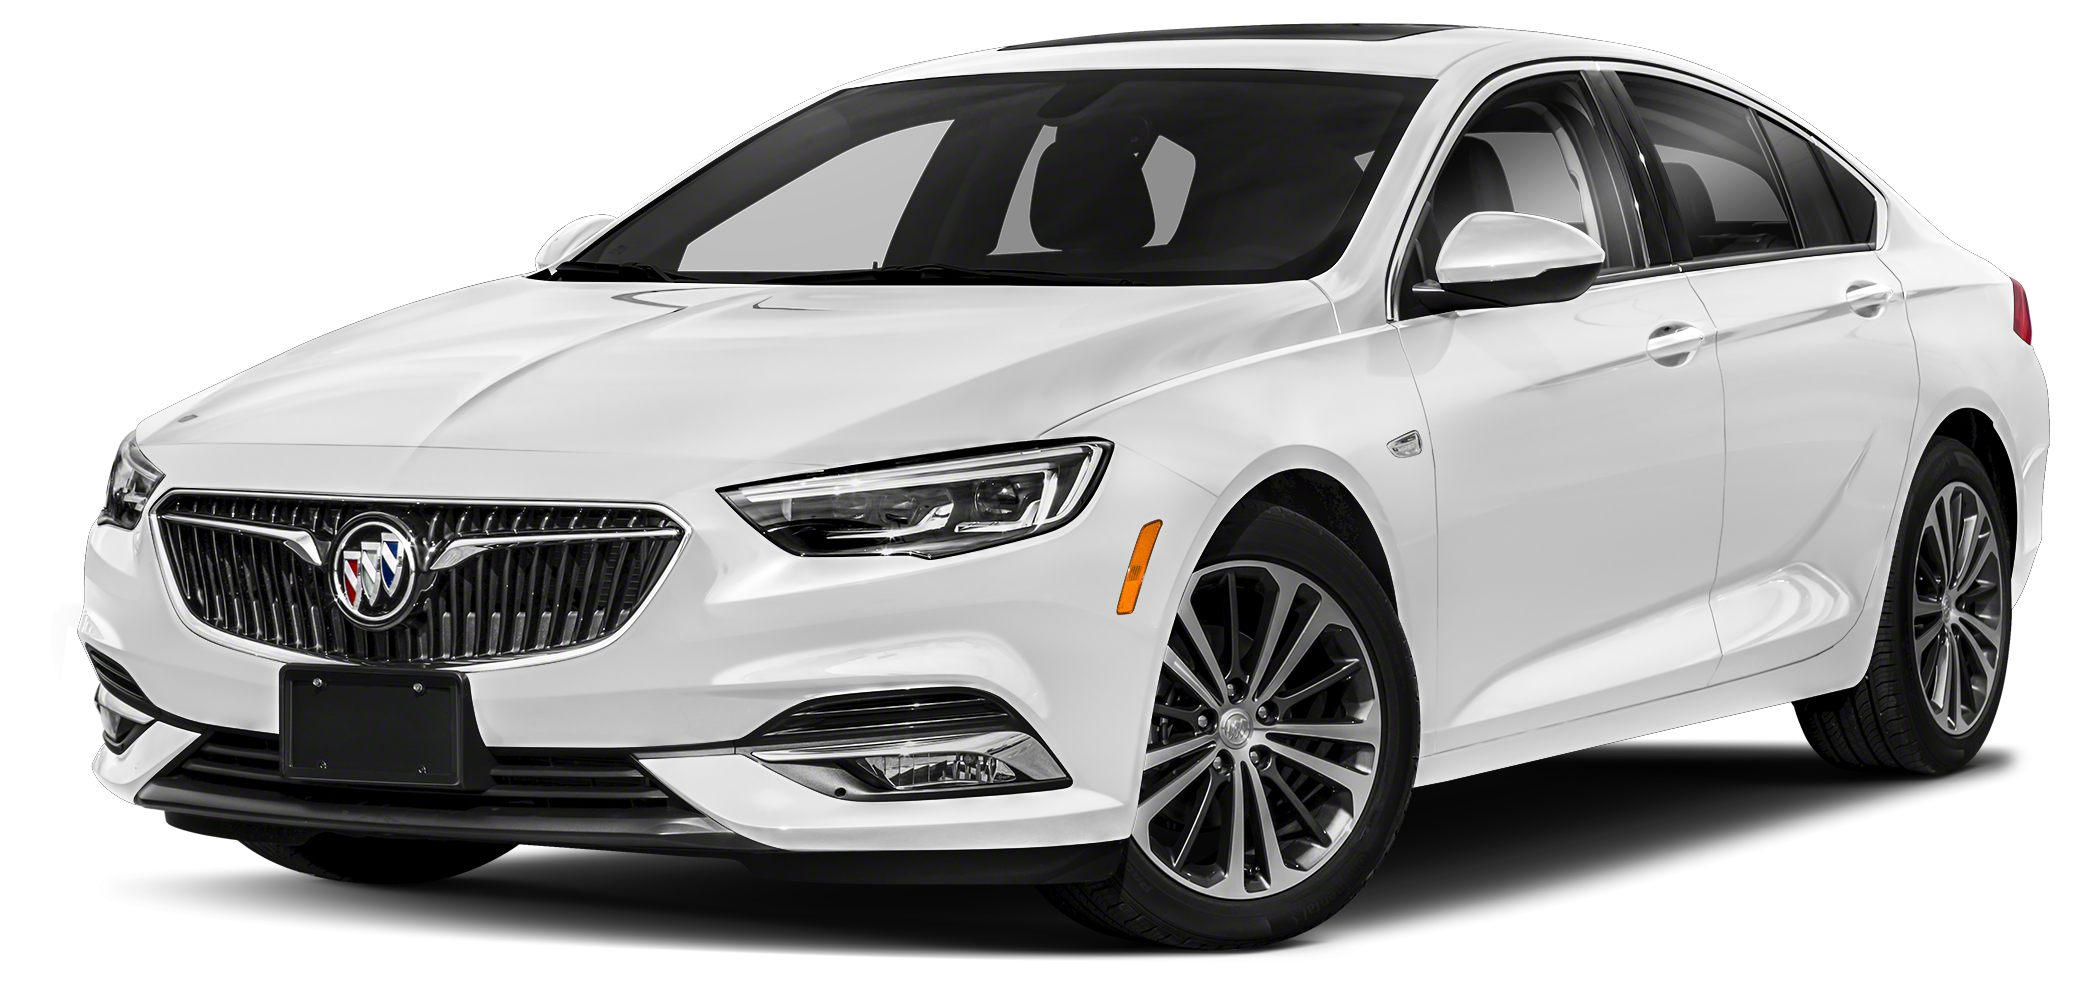 2018 Buick Regal Sportback Essence Get ready to go for a ride in this 2018 Buick Regal Sportback E